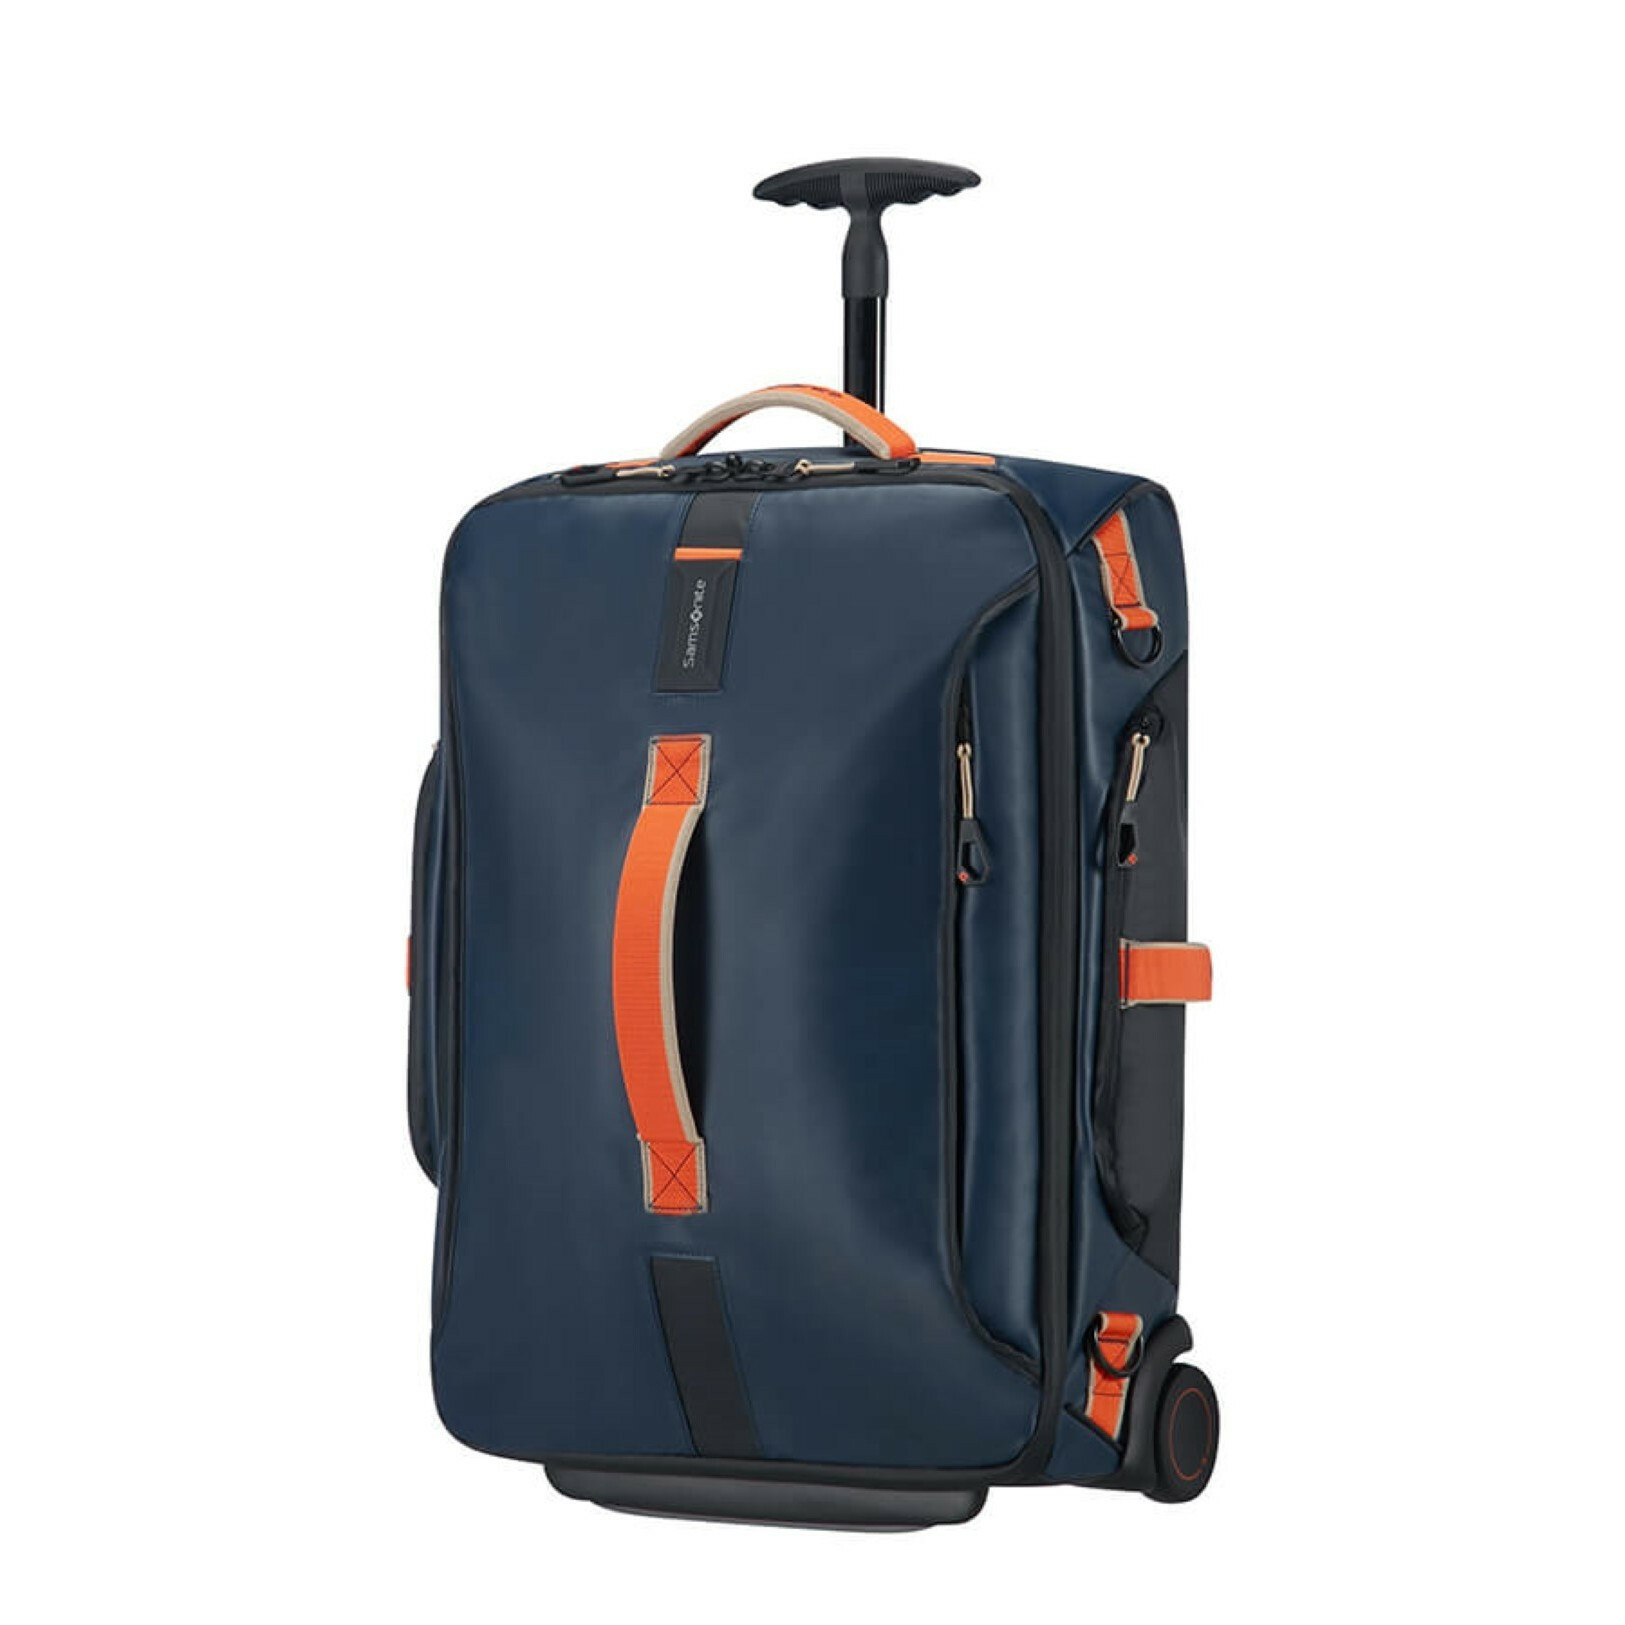 f70dc16c01a Samsonite PARADIVER LIGHT DUFFLE WHEELS 55, 01N-007 in de kleur 11 blue  nights